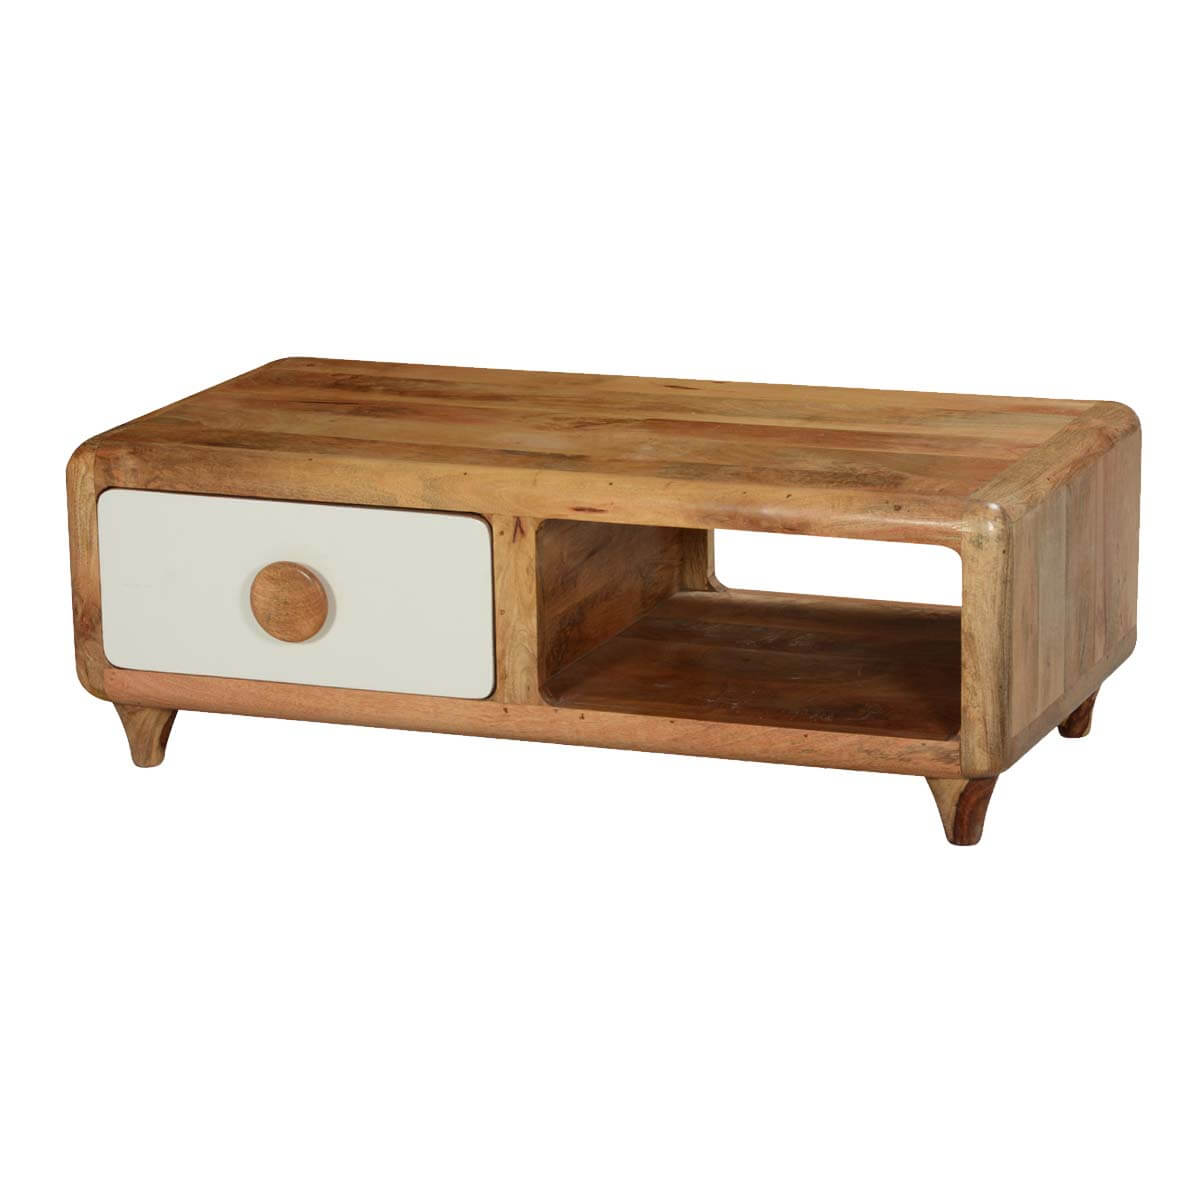 60 S Natural Mango Wood Rounded Corners Tv Console Media